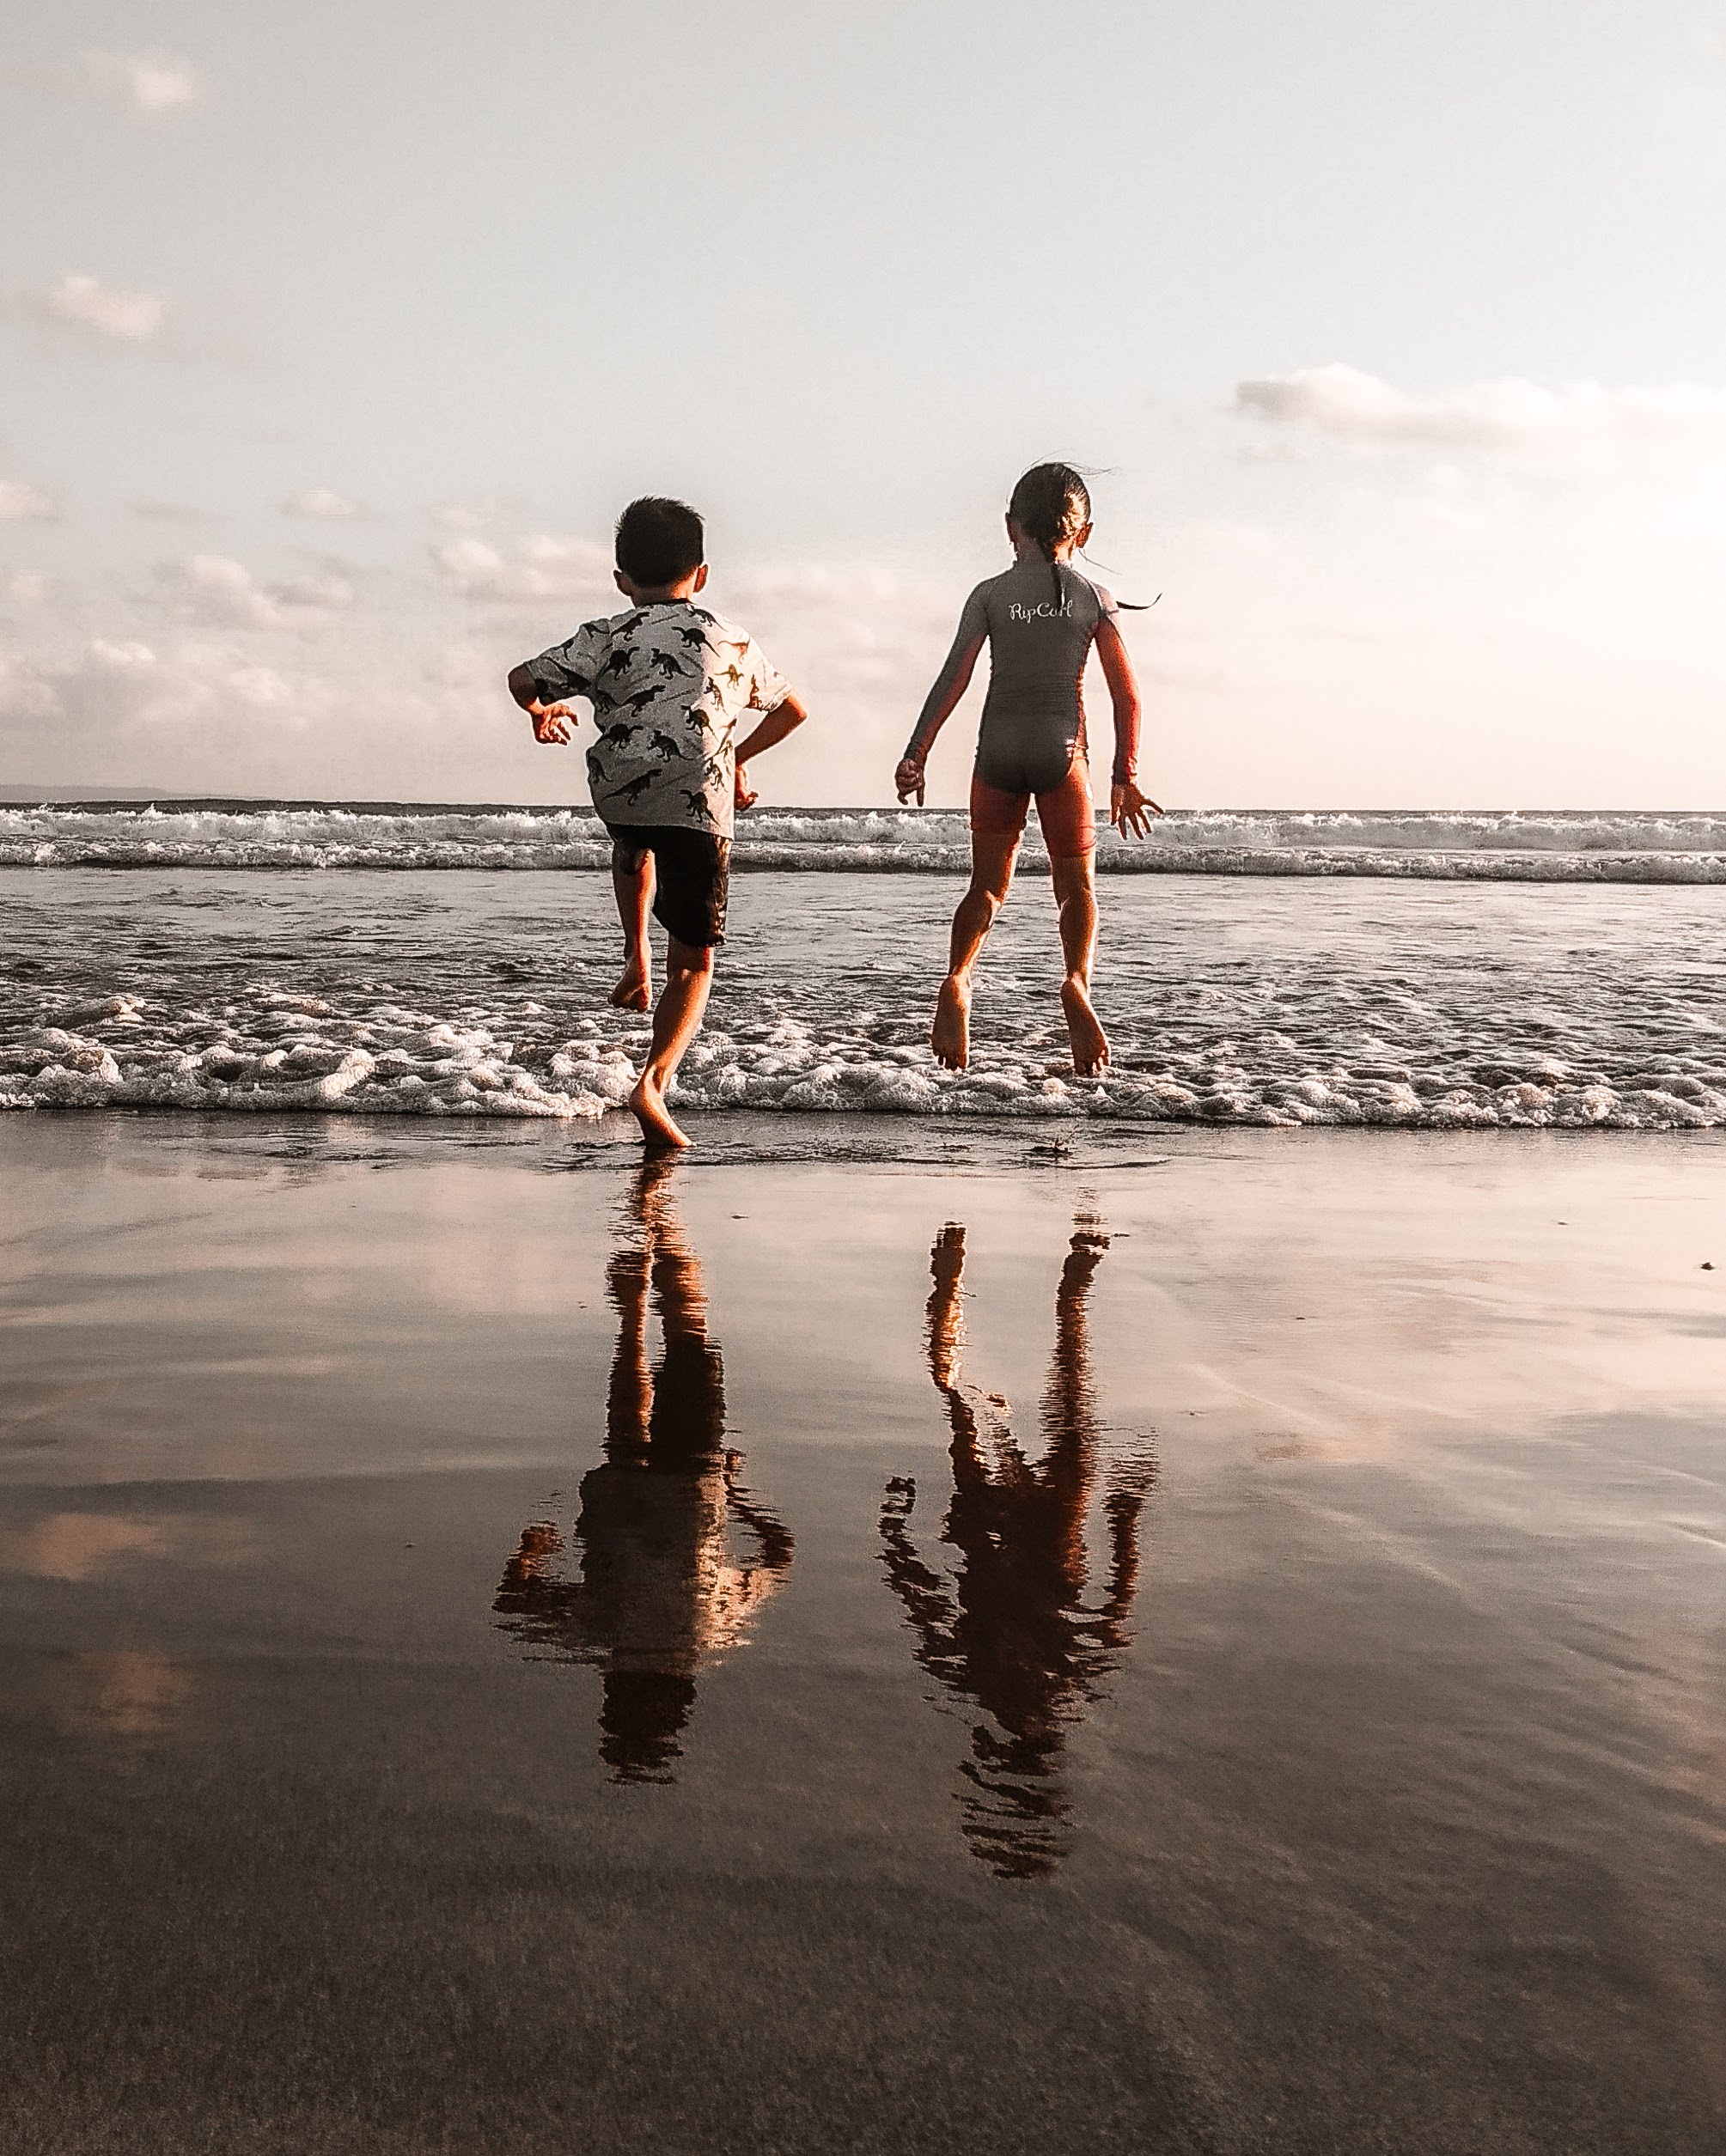 1st Post in 2020: Fun Hotels in Bali for Travelling with Kids